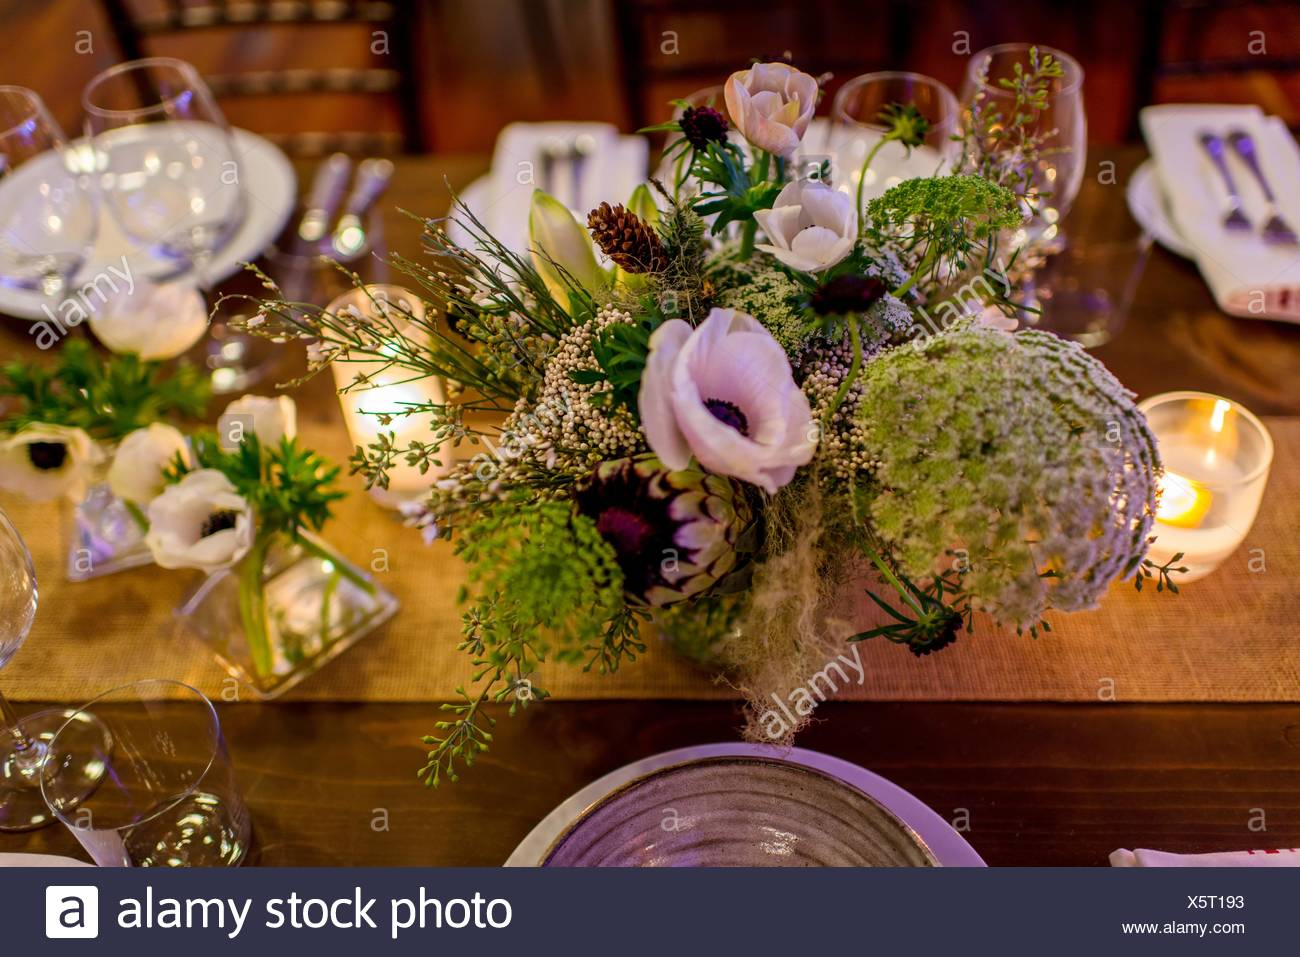 Flower Arrangement On Dinner Party Table Stock Photo Alamy